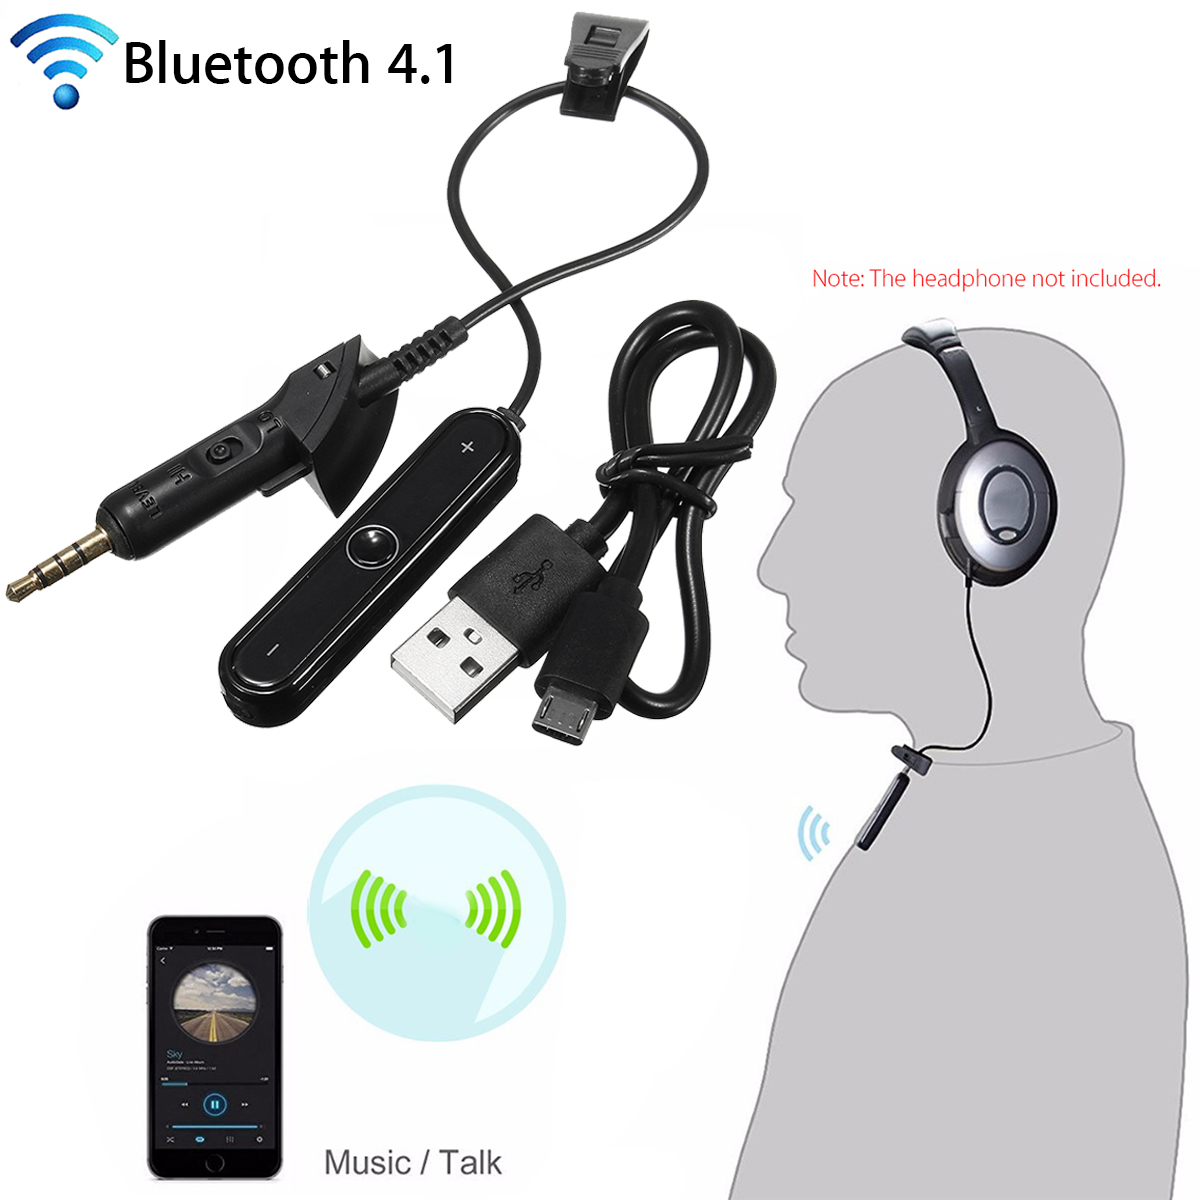 Bakeey bluetooth 4.1 Wireless Adapter Transmitter Cable For Bose For QuietComfort QC2 QC15 Headphone